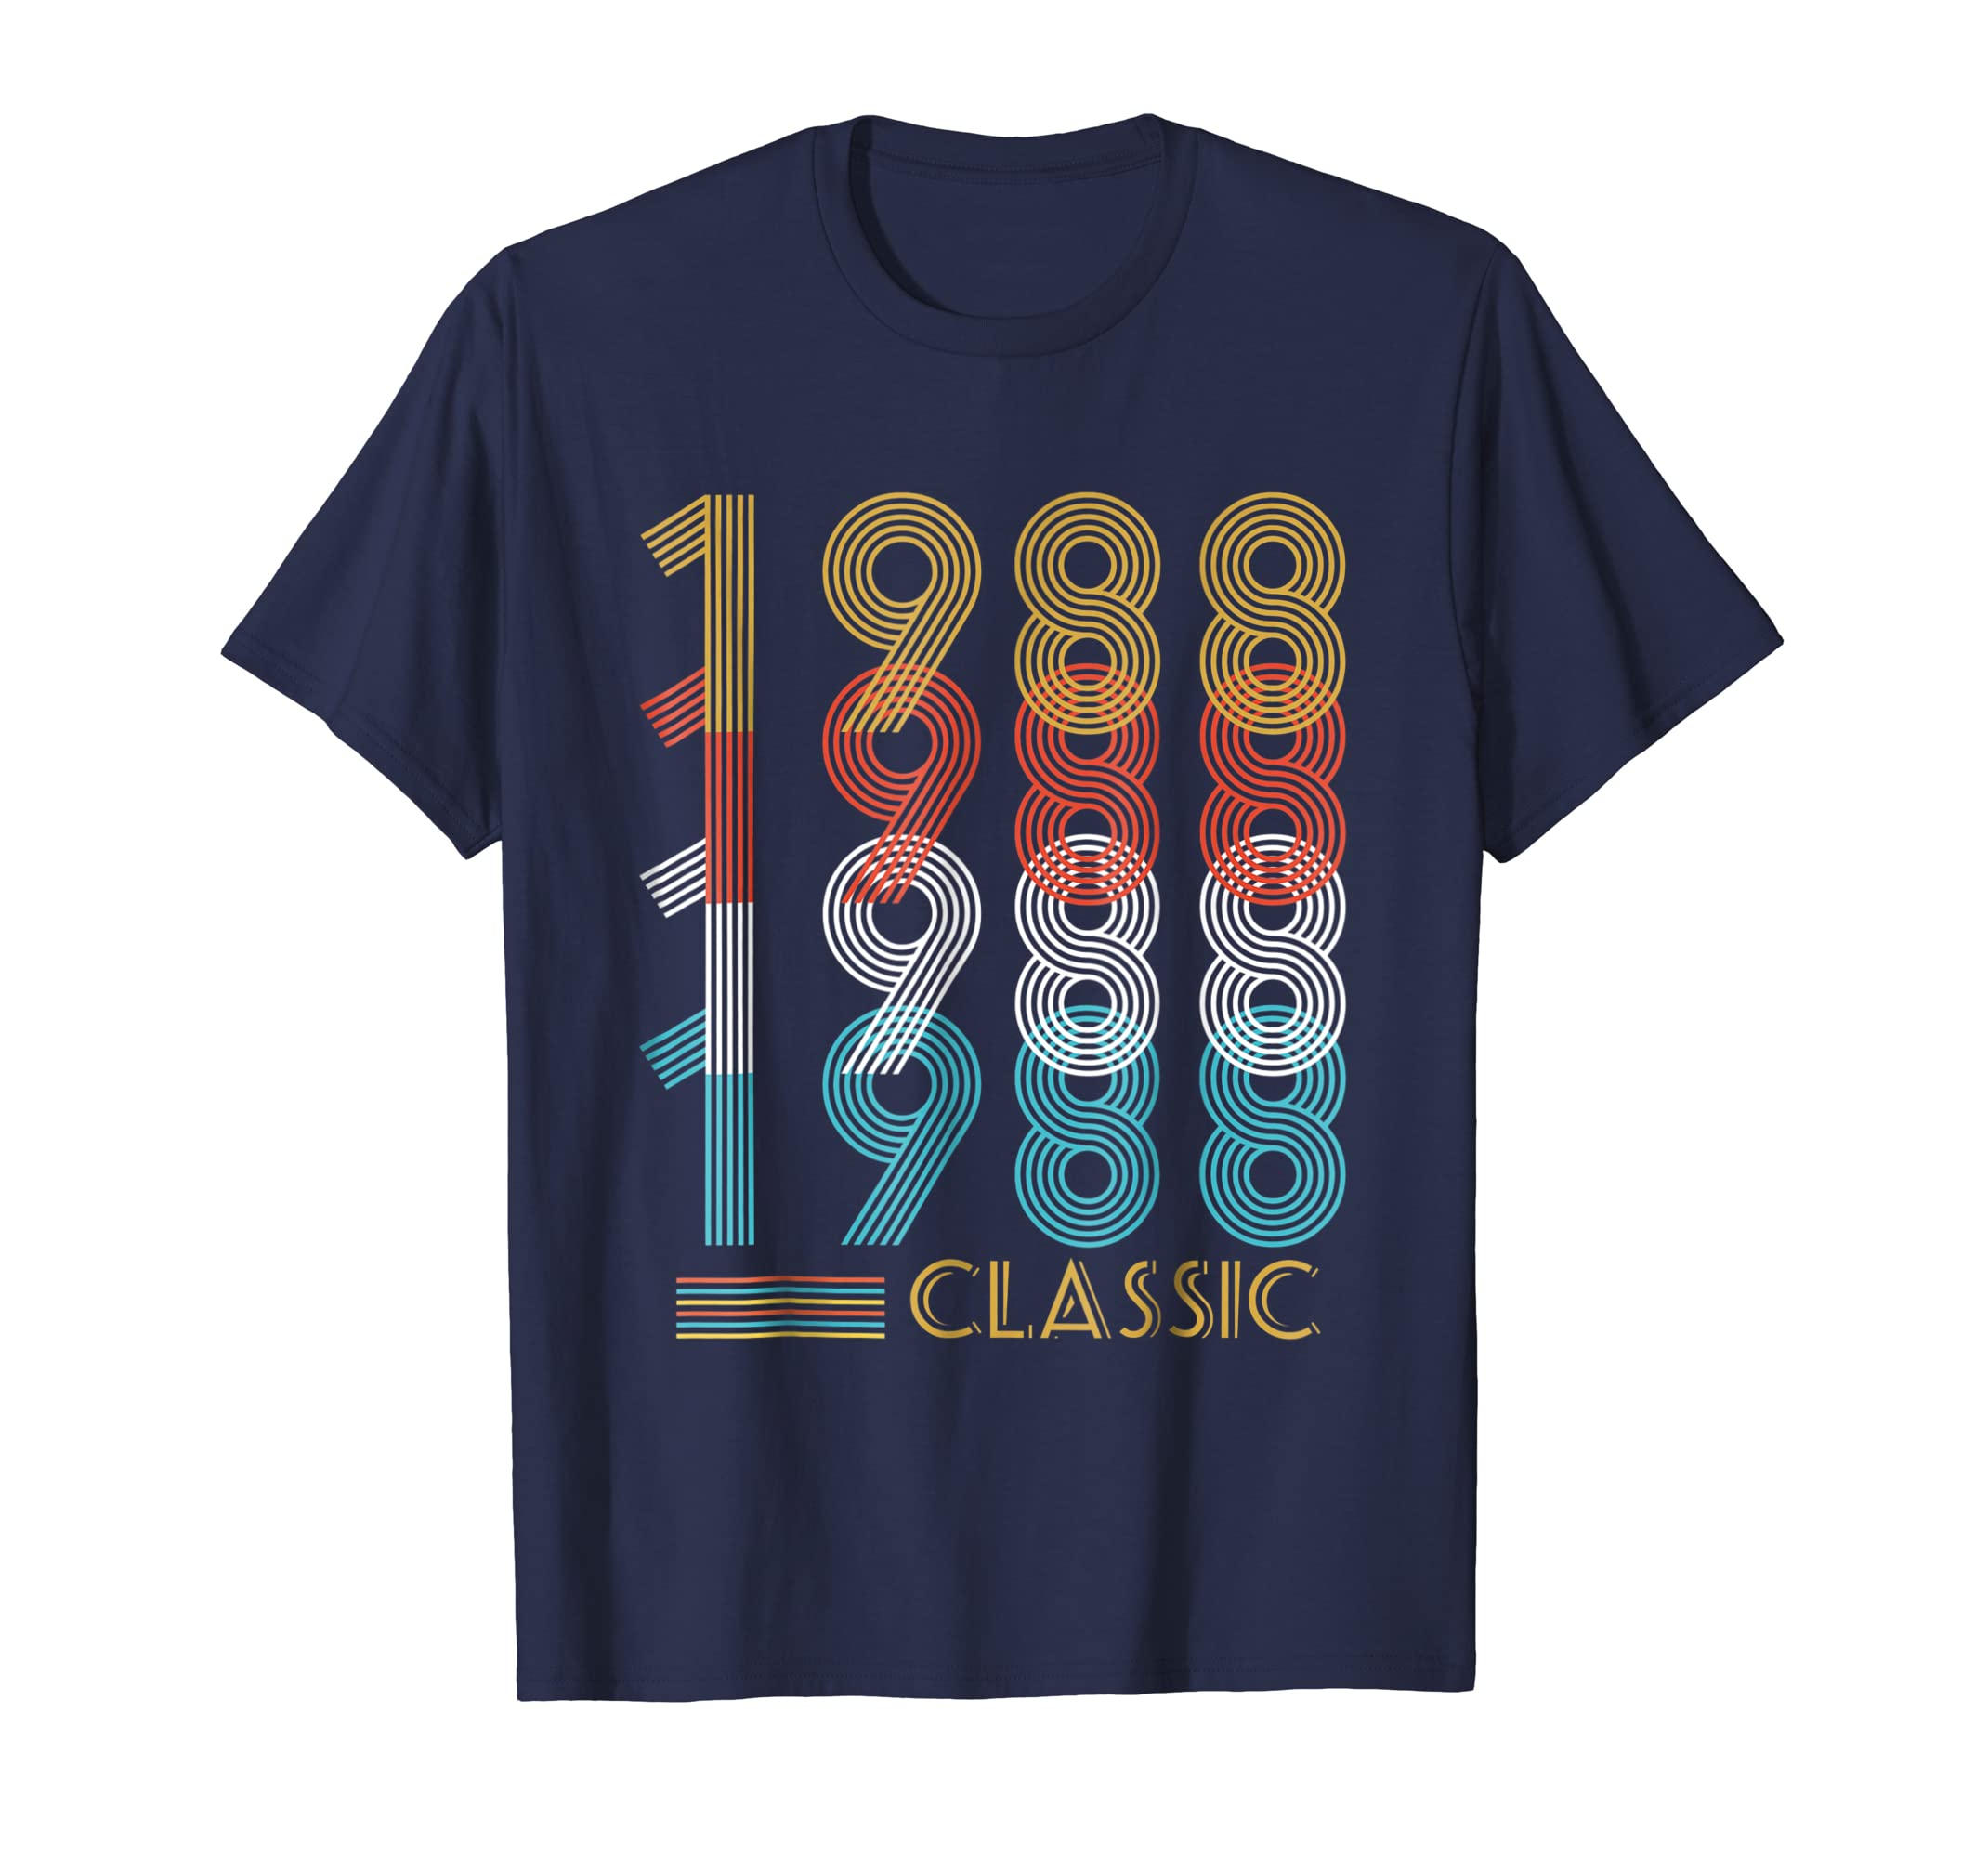 30th Birthday Gift Vintage 1988 T-Shirt For Men Women-AZP